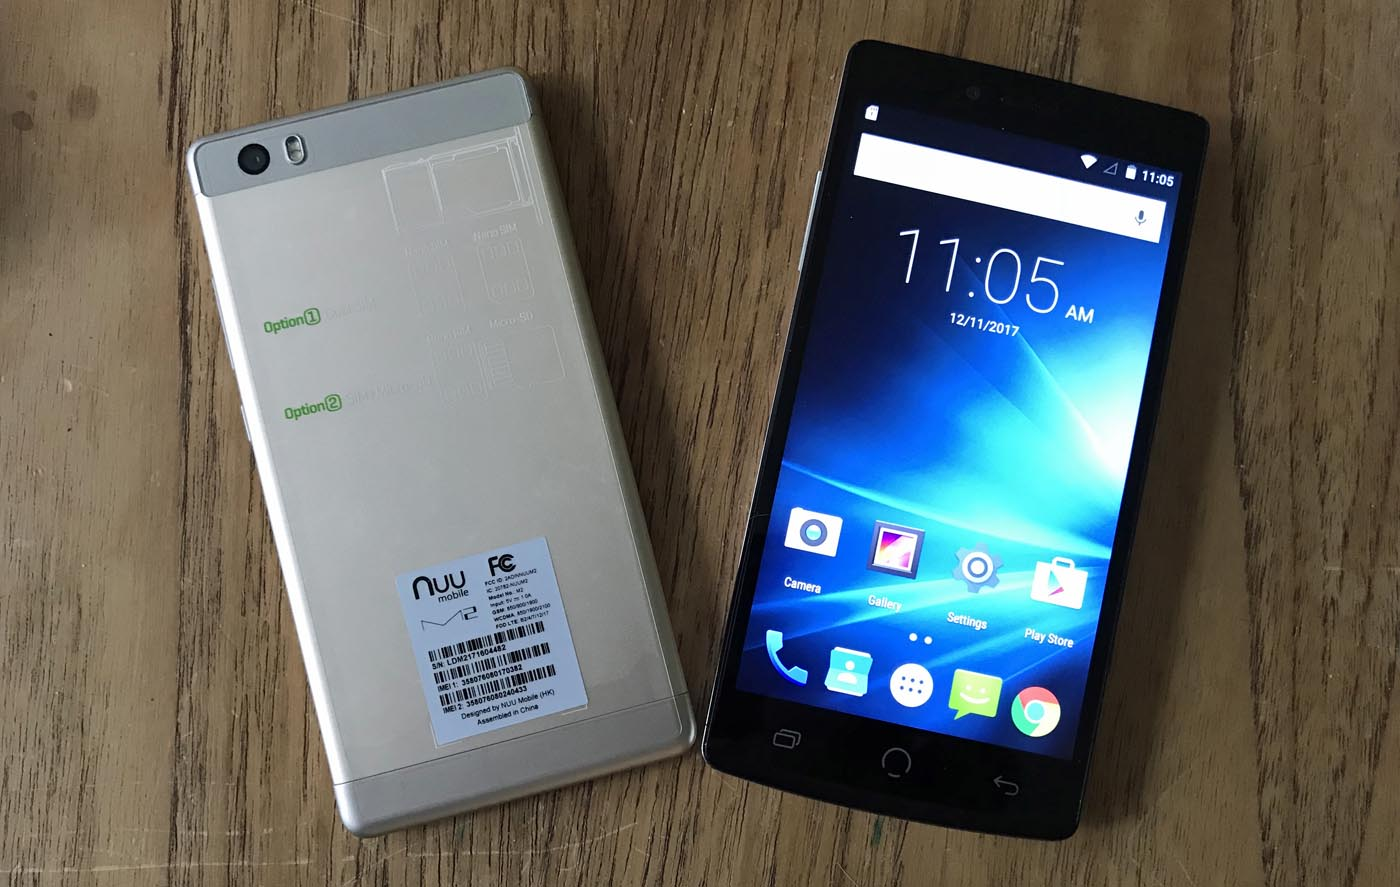 Review of Nuu M2 and Z8 smartphones | Best Buy Blog